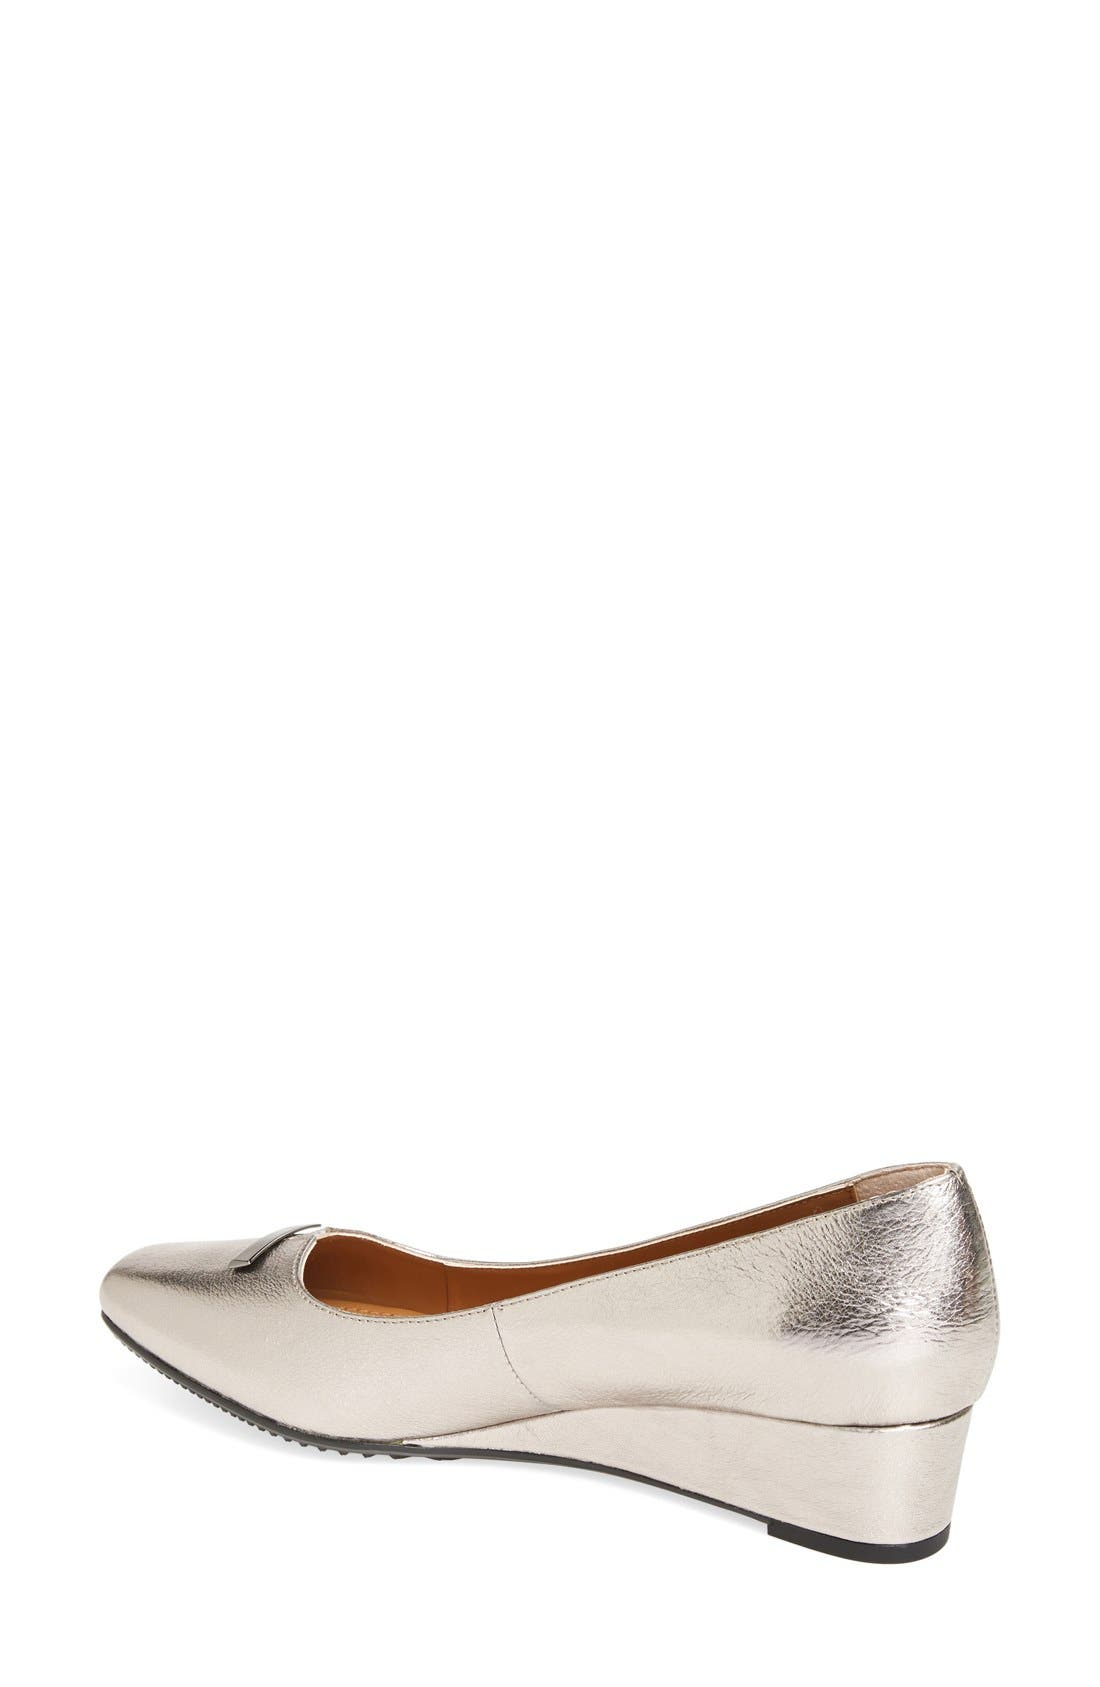 Yarall Square Toe Wedge,                             Alternate thumbnail 4, color,